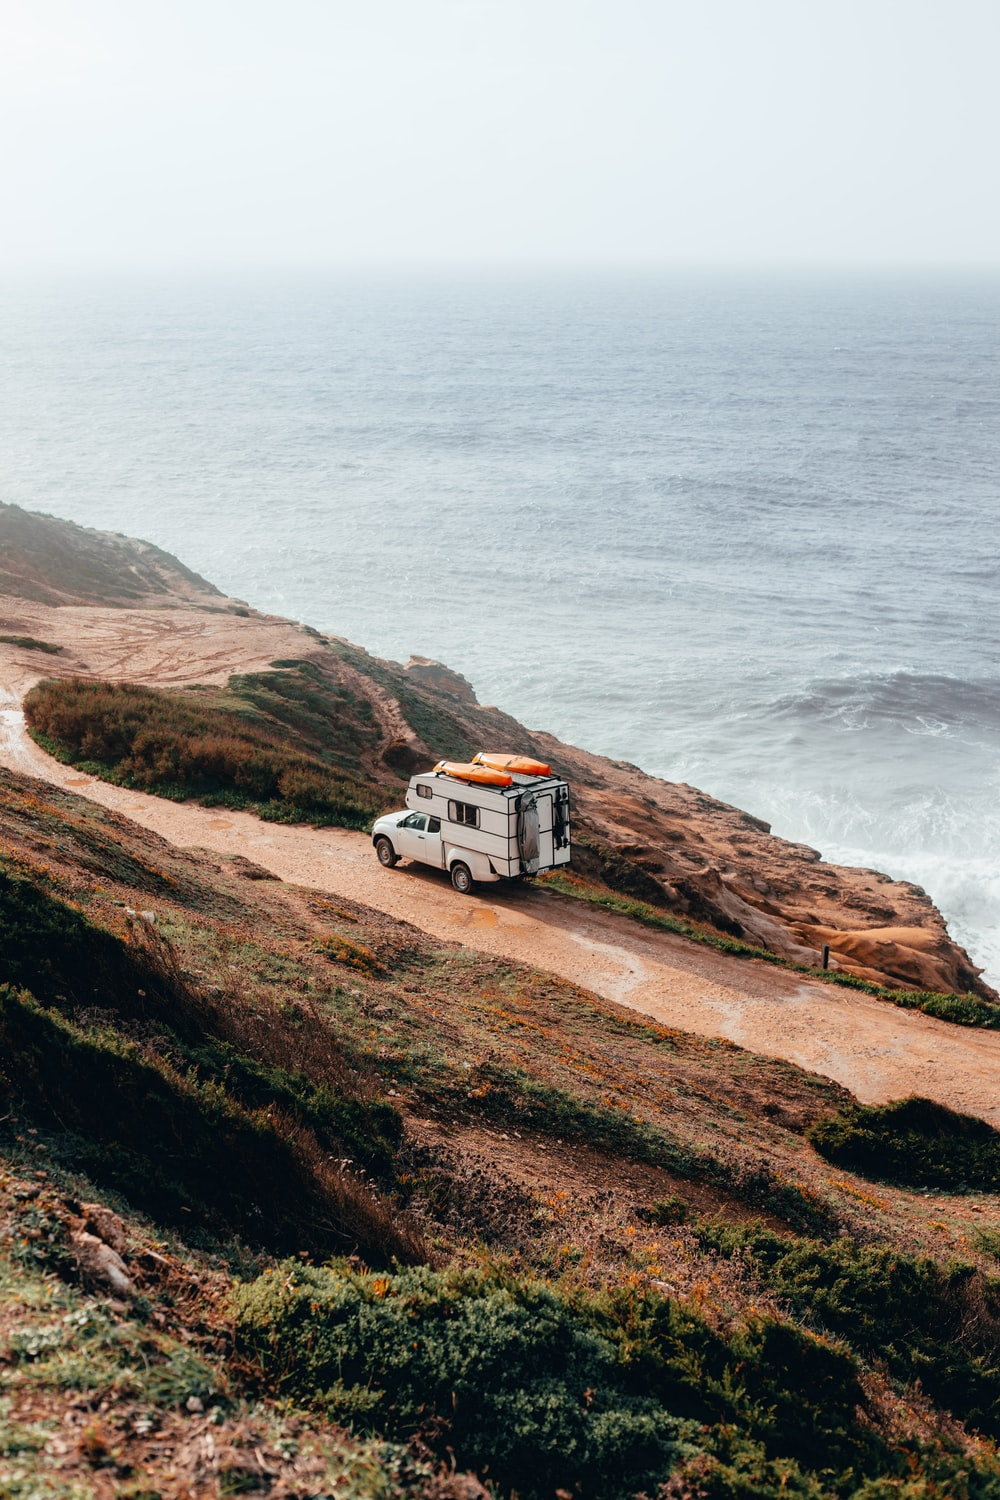 camper trailer on cliff near sea